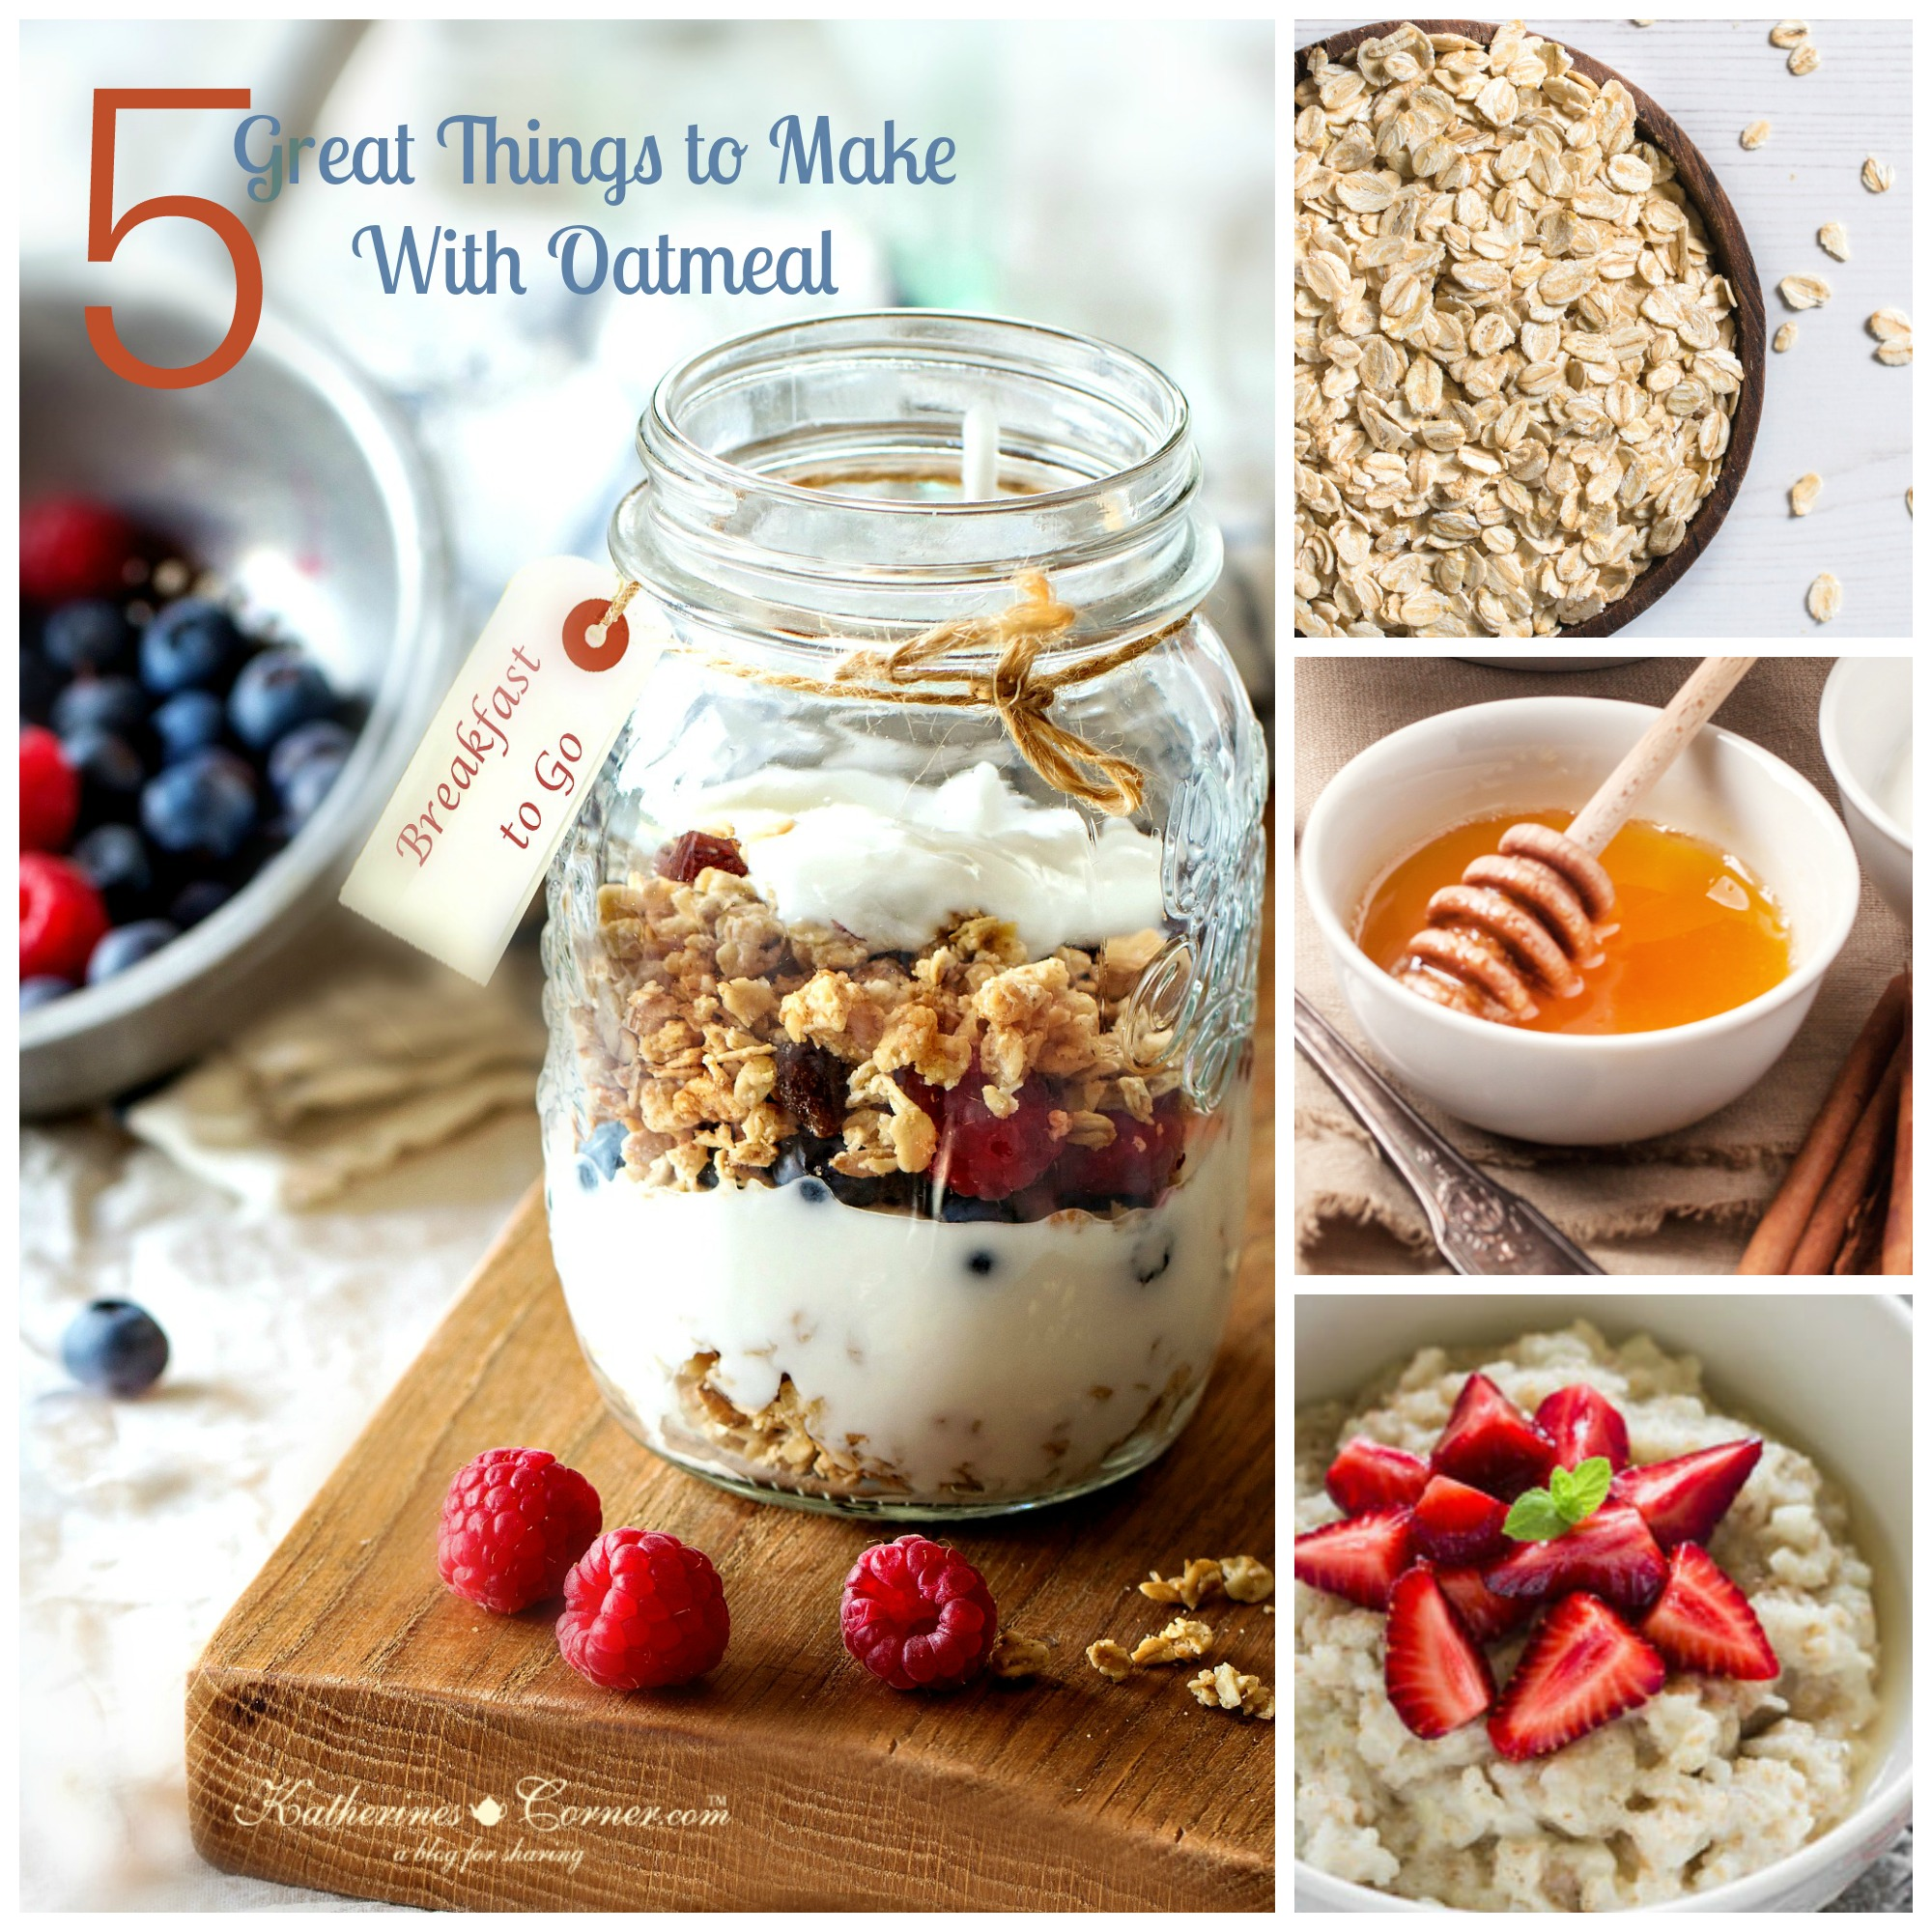 Five Great Things To Make With Oatmeal